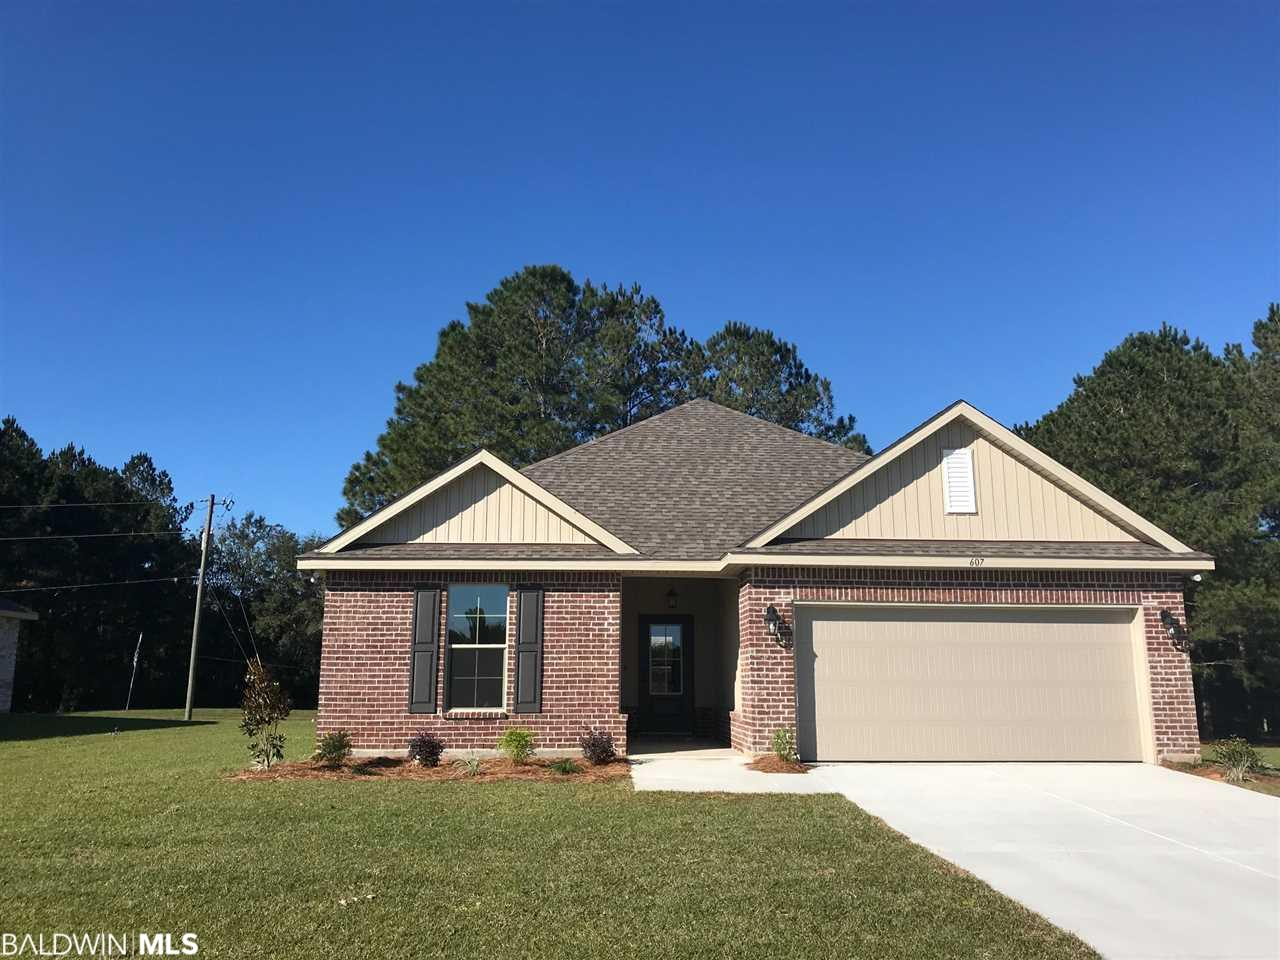 607 Savannah Ct, Summerdale, AL 36580